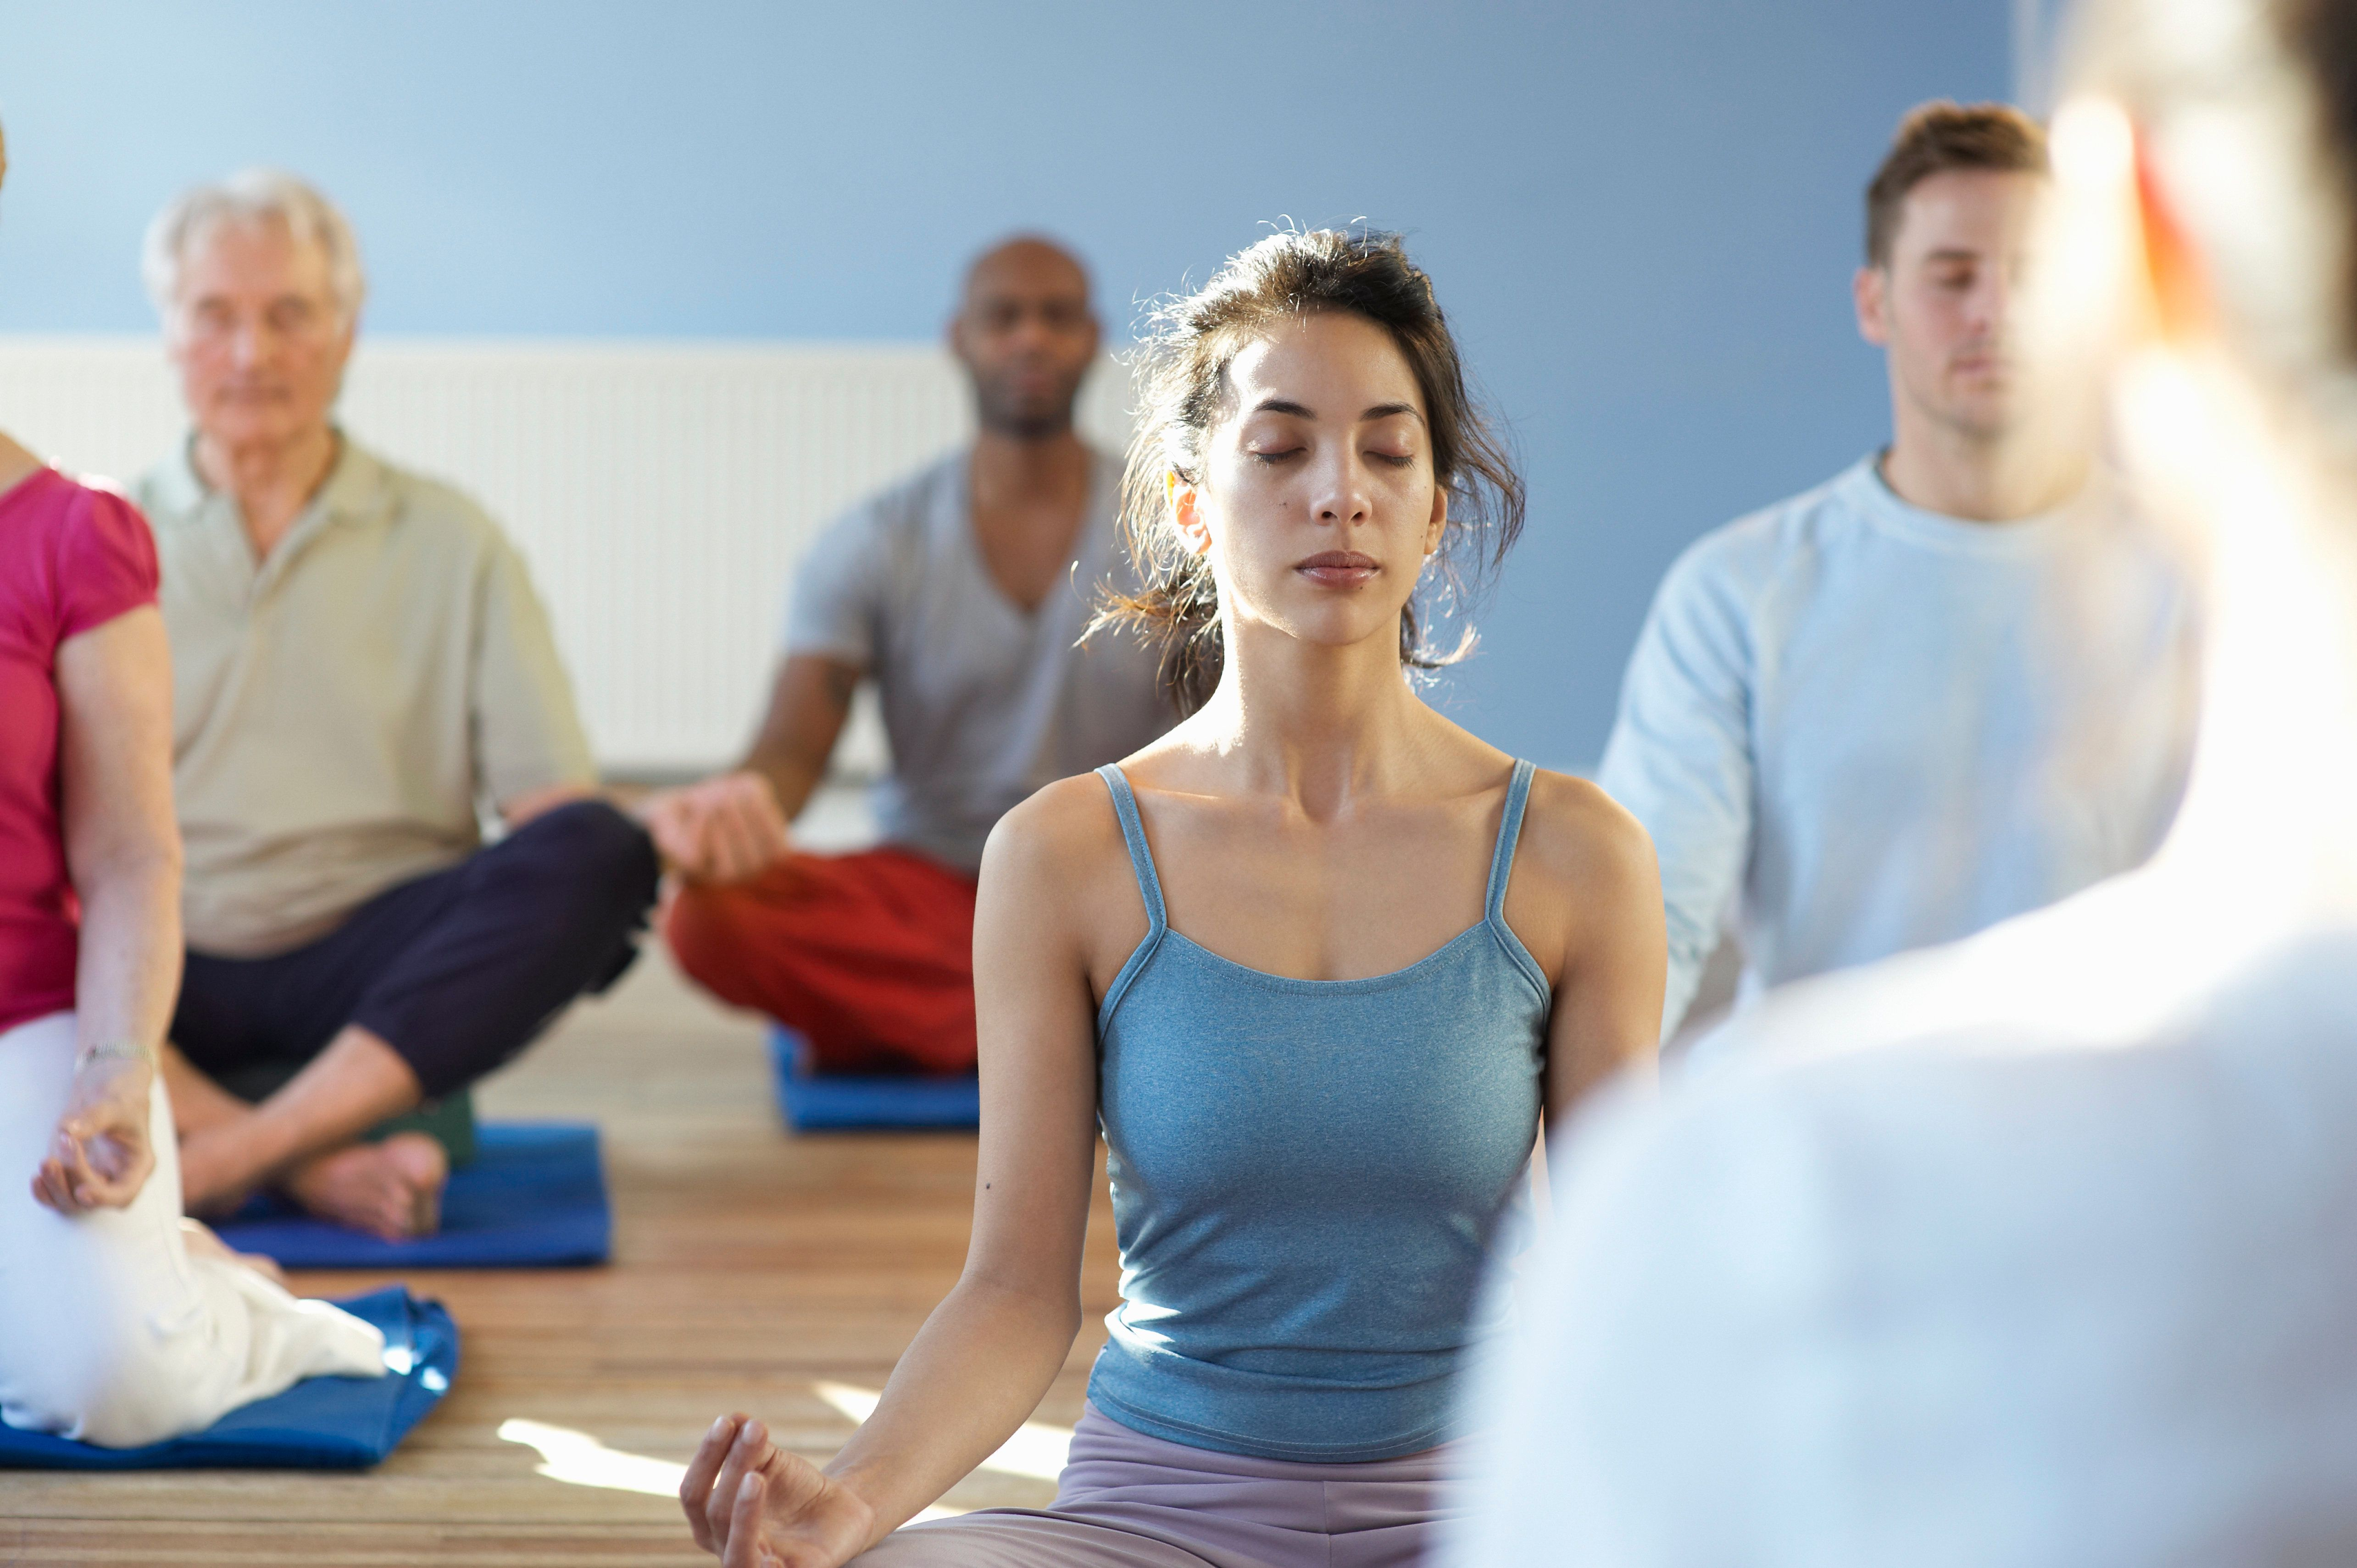 Discussion on this topic: A Meditation A Day Keeps Alzheimer's At , a-meditation-a-day-keeps-alzheimers-at/